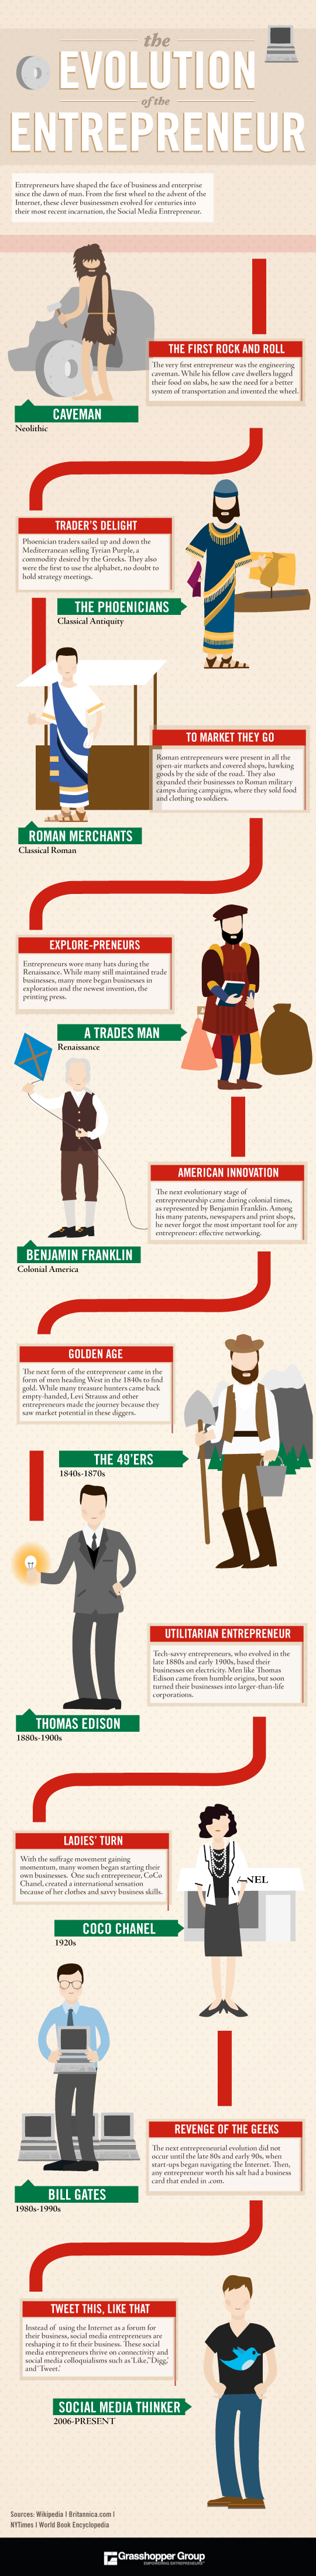 The evolution of the entrepreneur #infographic